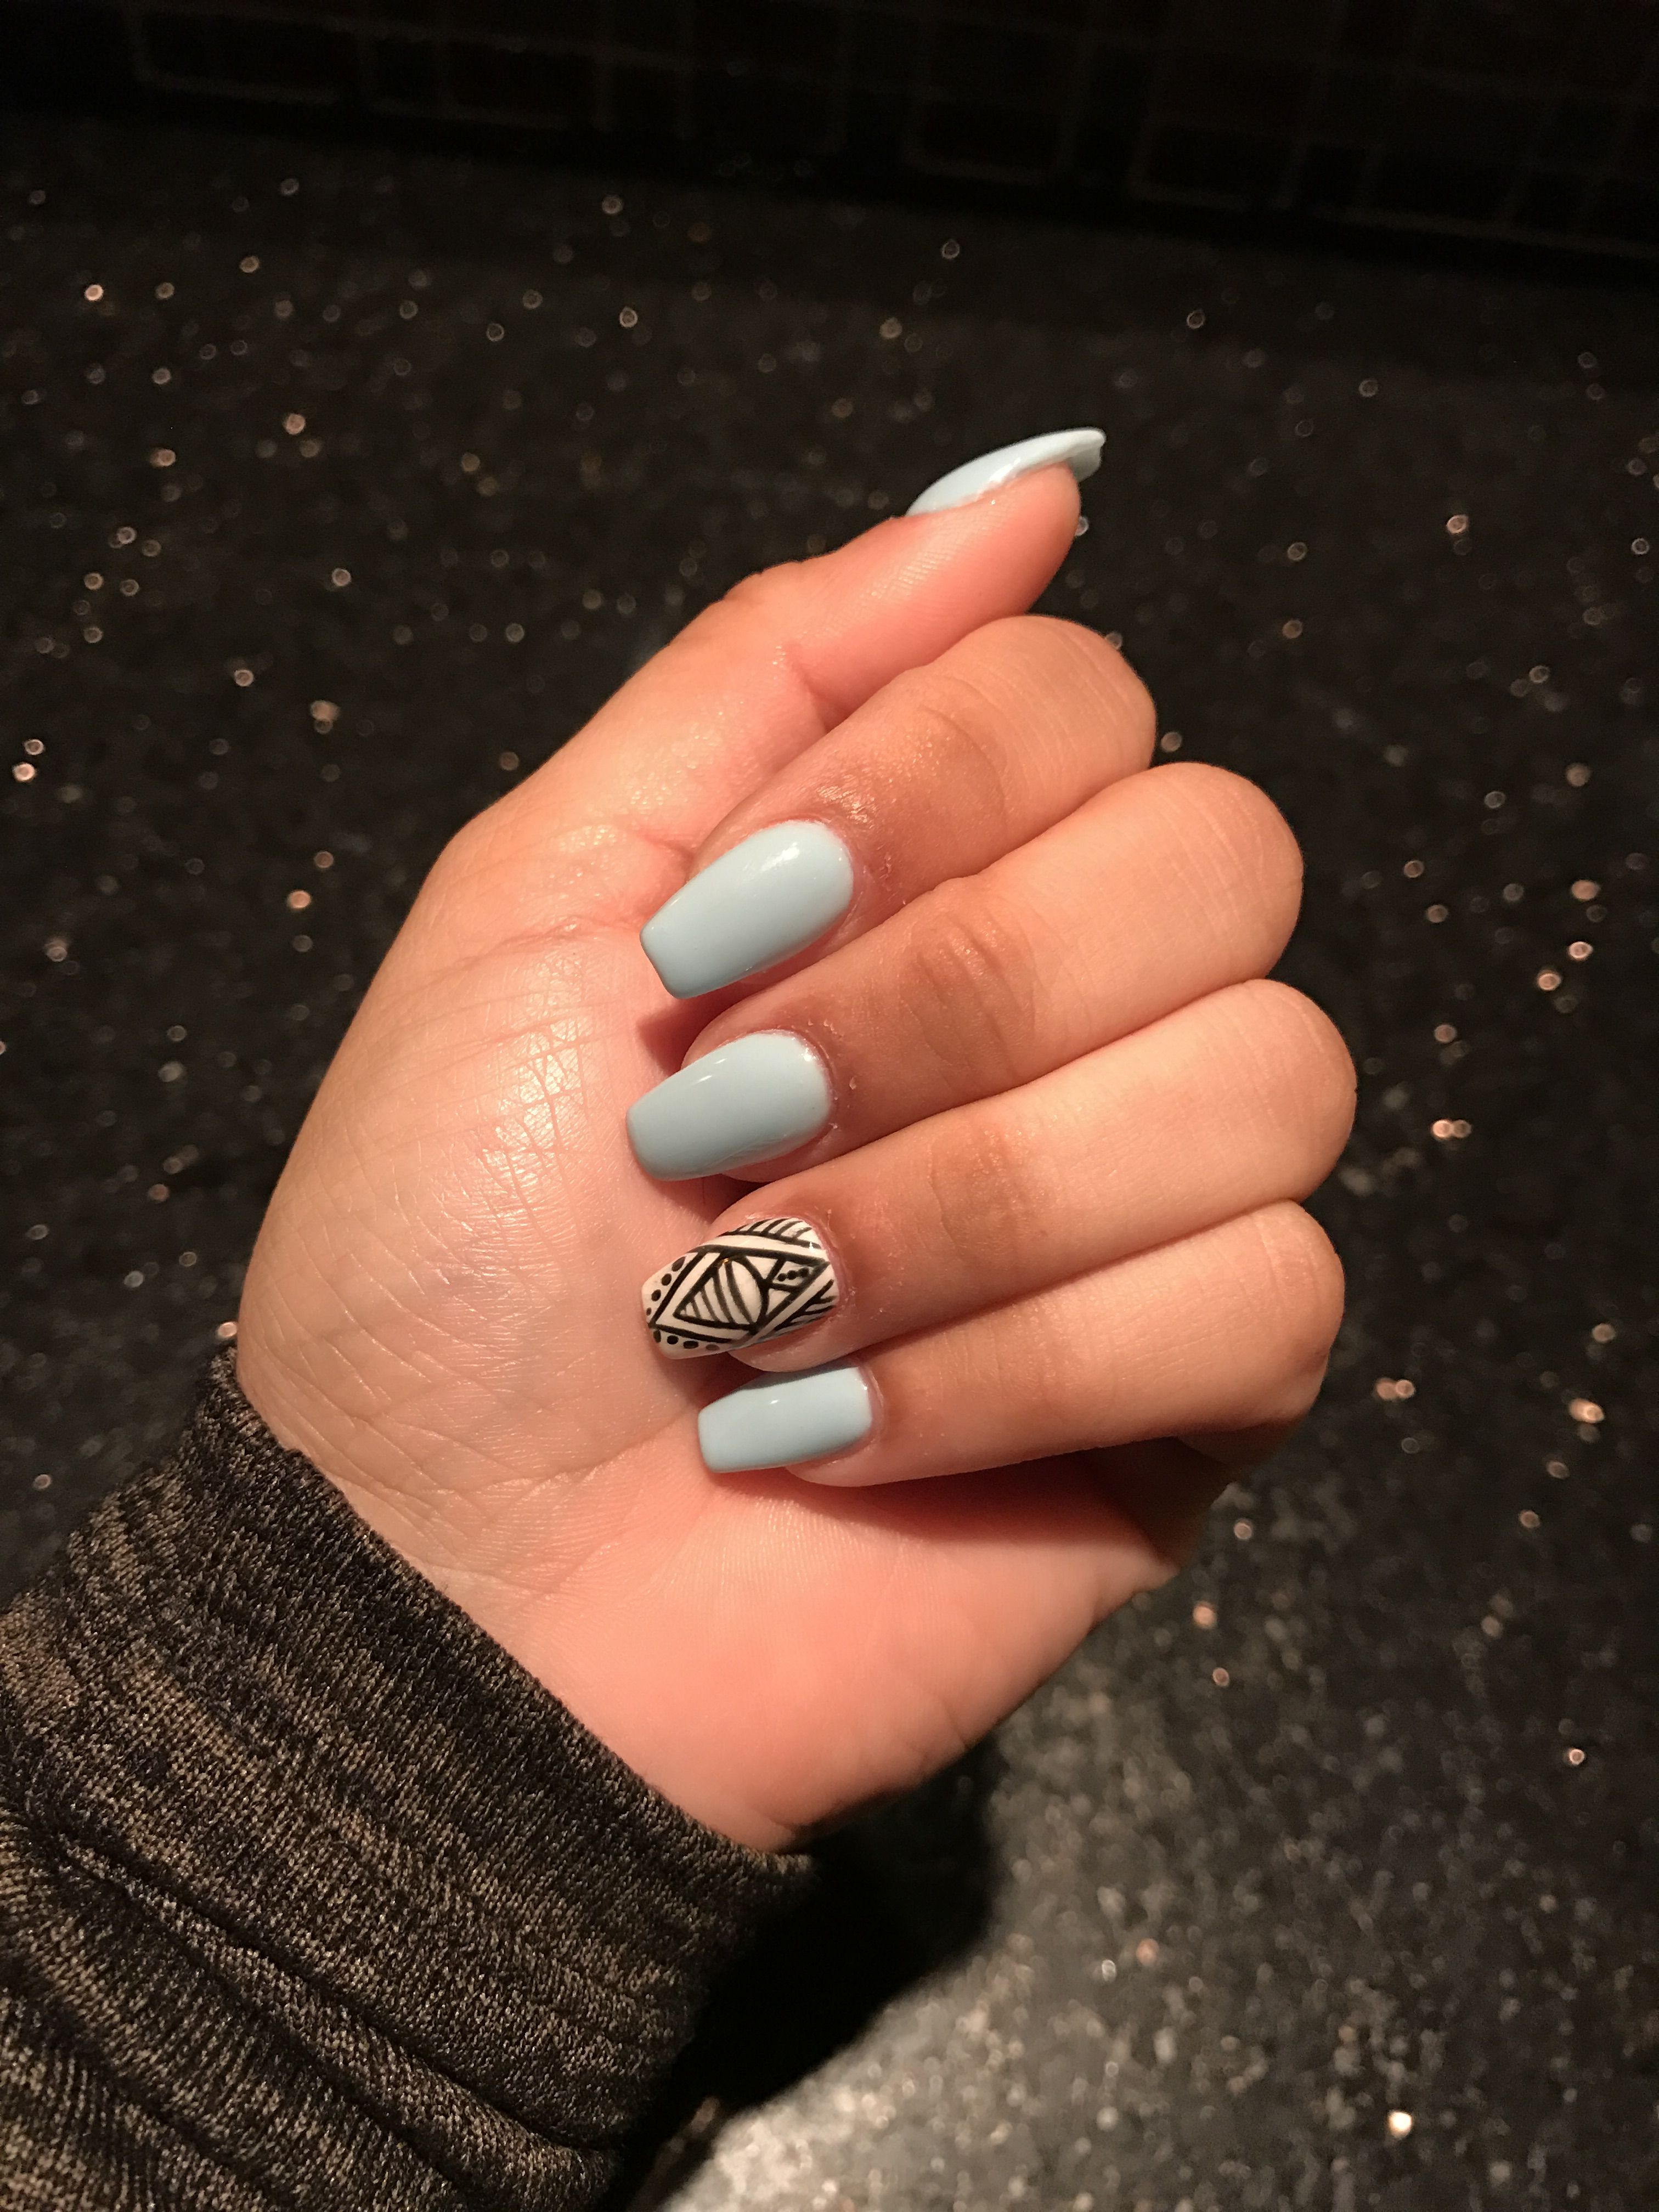 Sleek Nails and Spa in Annapolis Maryland. Done by Hannah. Baby blue ...